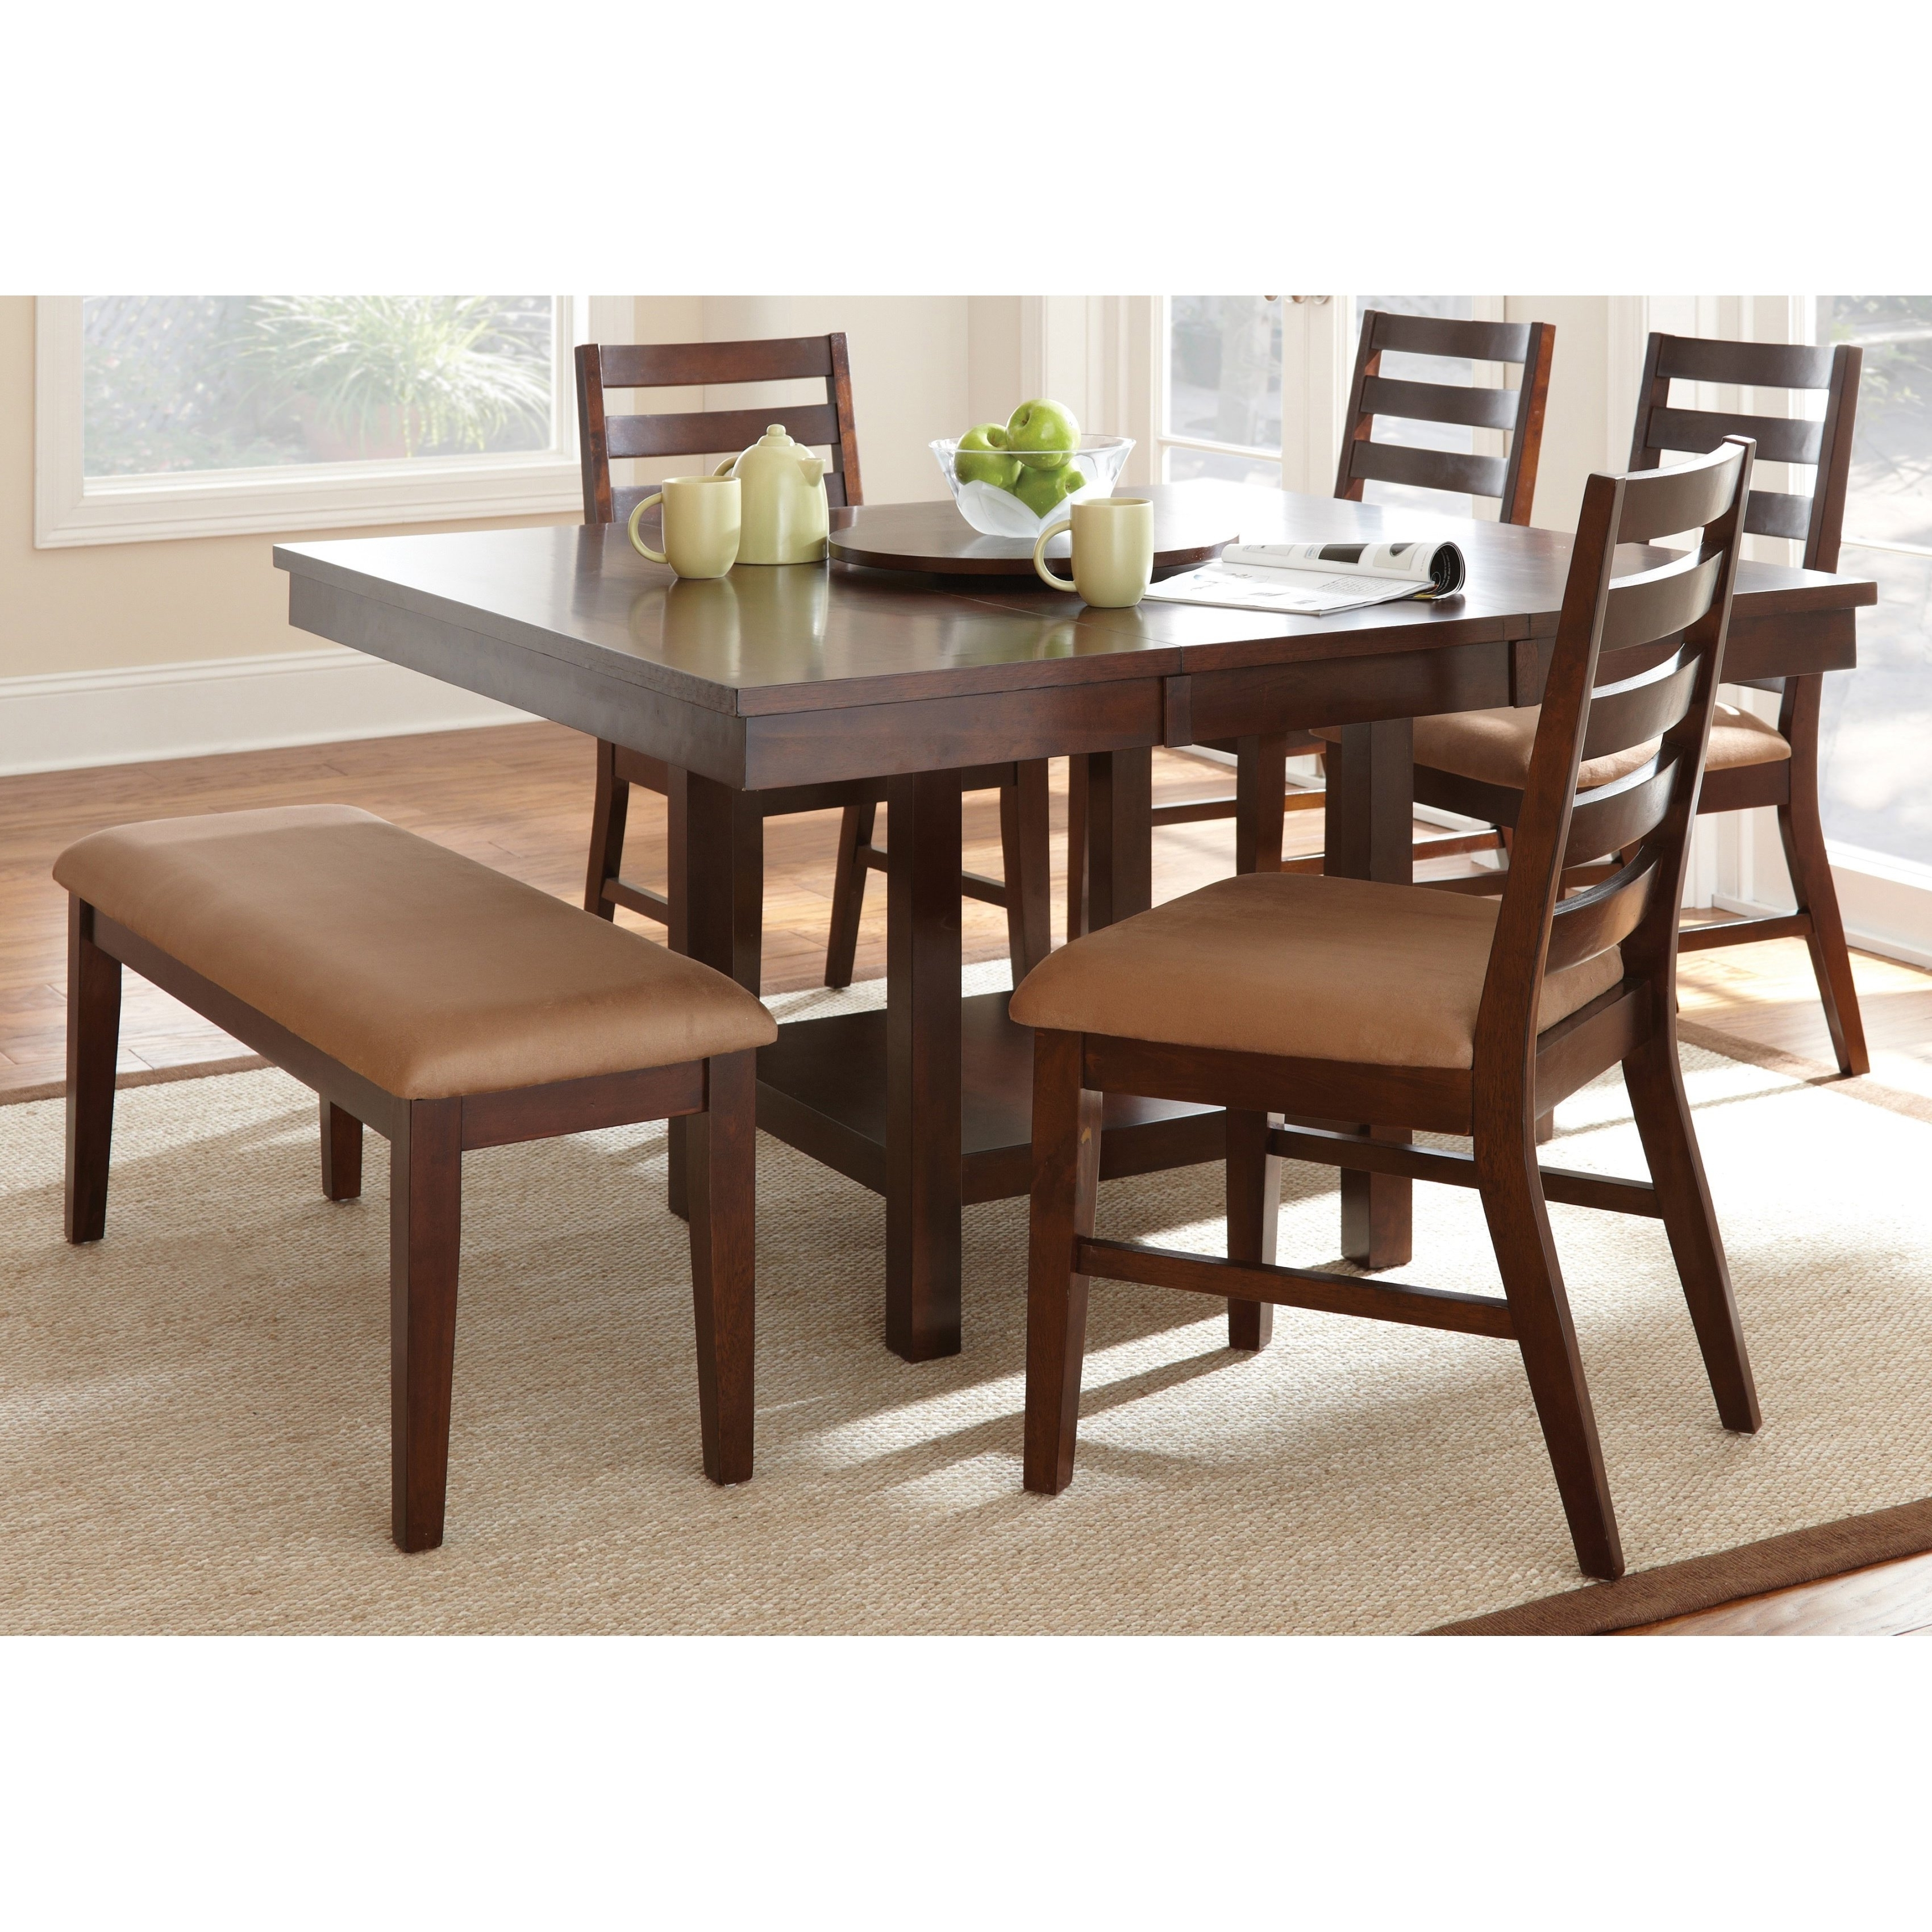 Shop Greyson Living Emery With Lazy Susan Dining Table Set – Ships Regarding Best And Newest Leon 7 Piece Dining Sets (View 24 of 25)